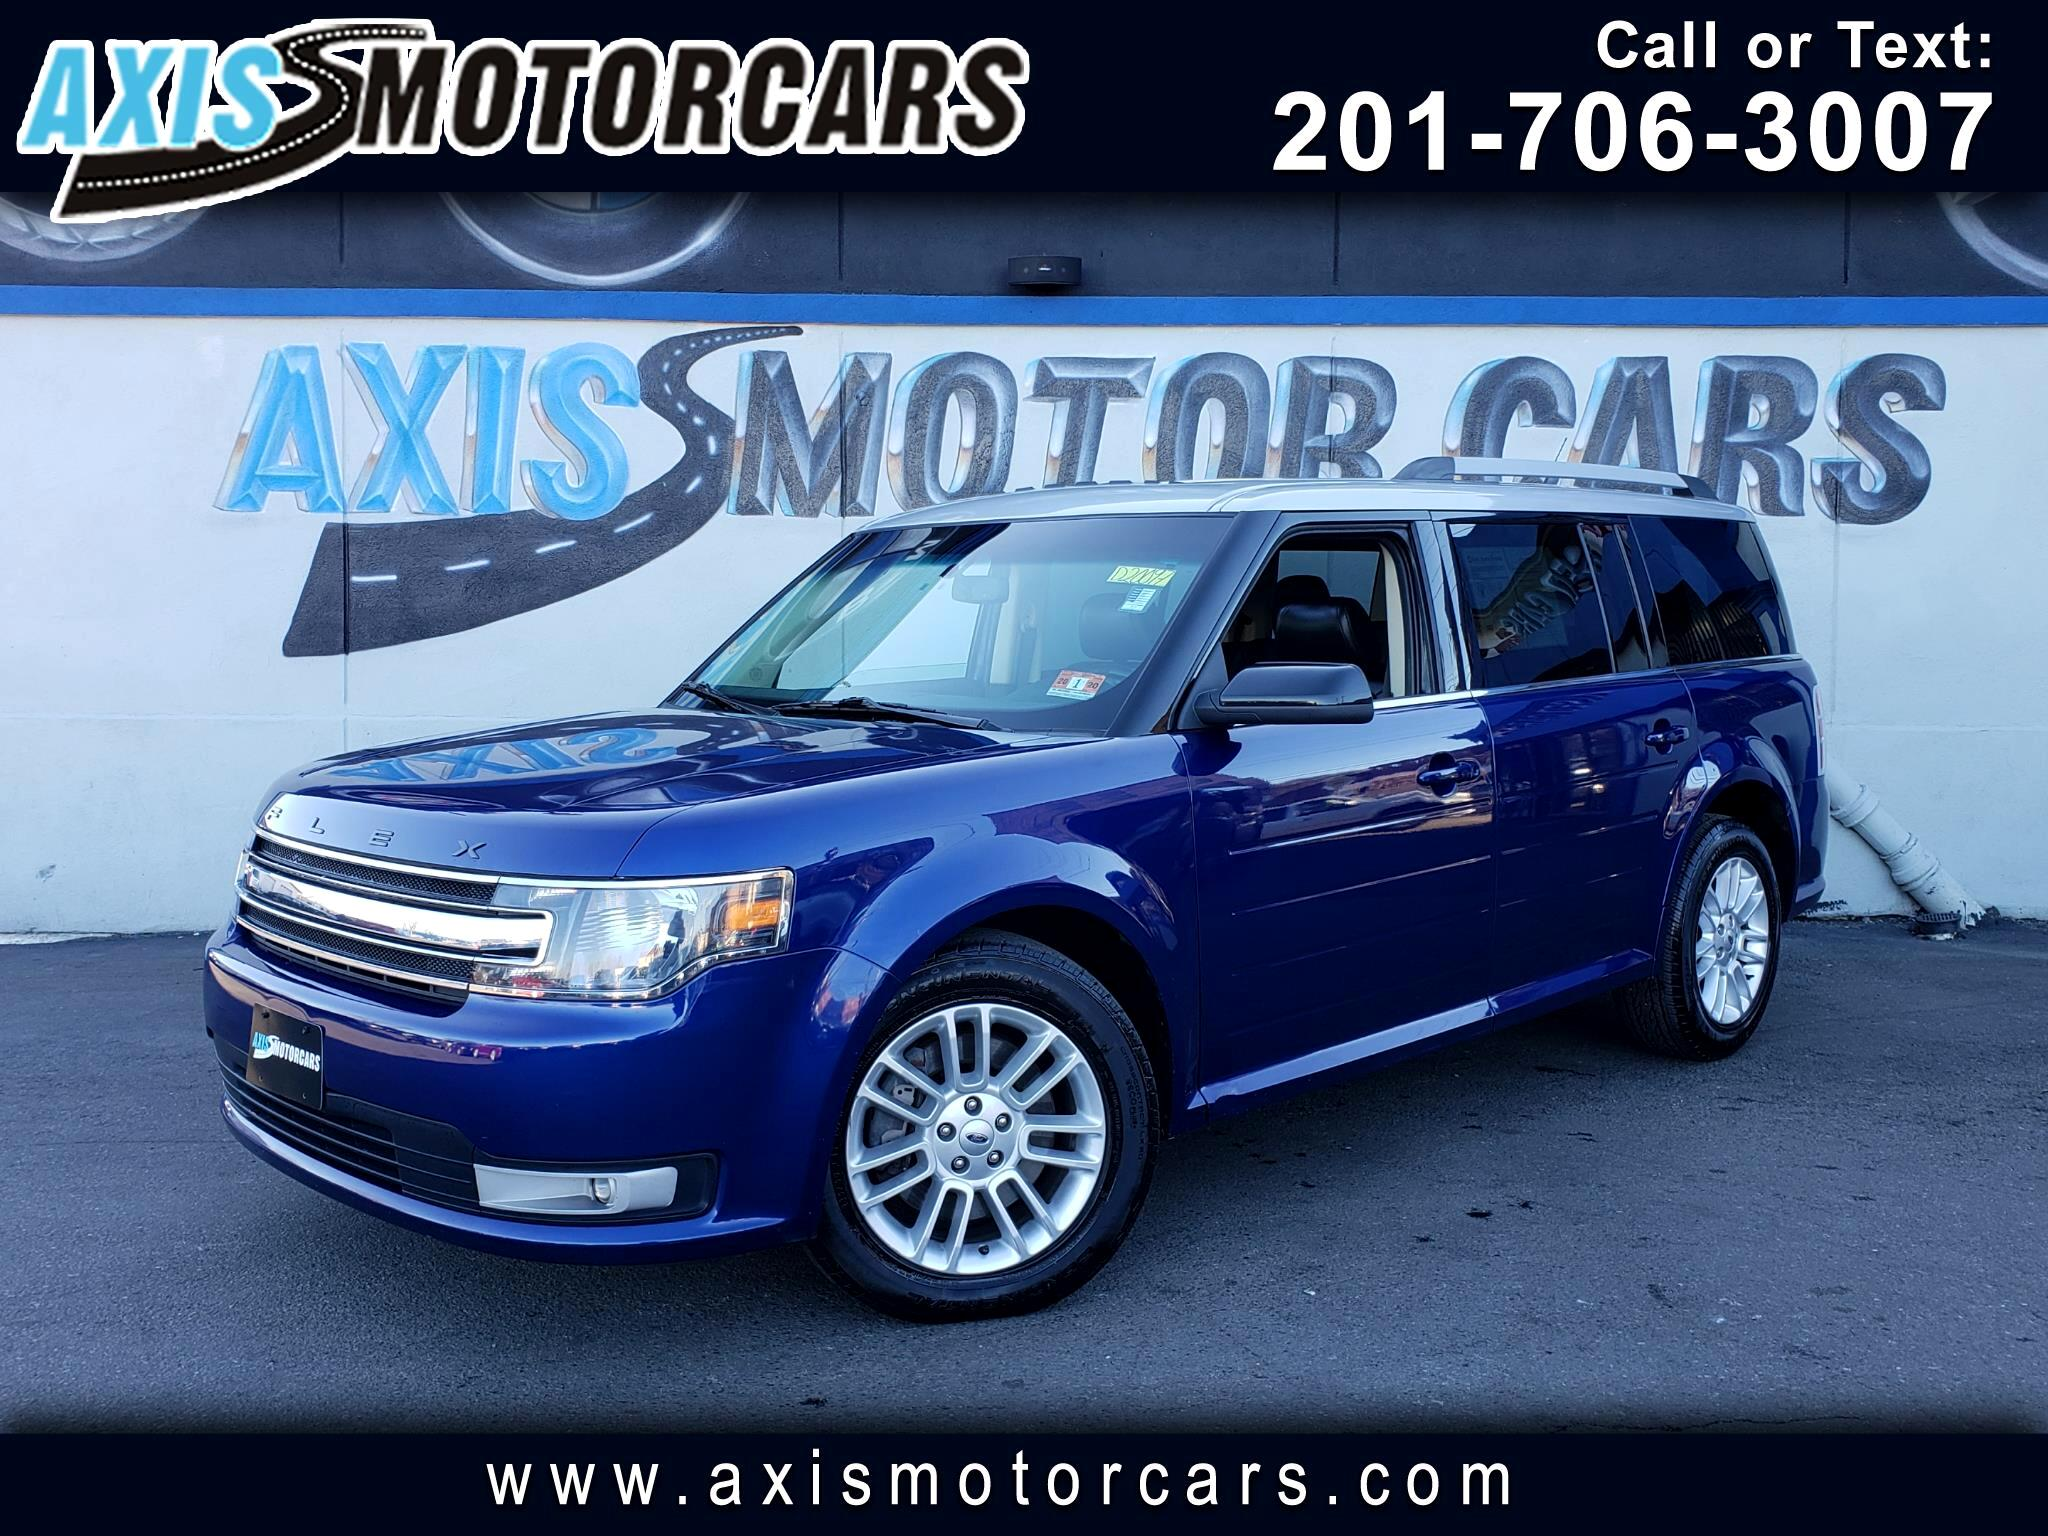 2013 Ford Flex SEL w/Navigation Bakup Camera Panoramic Roof